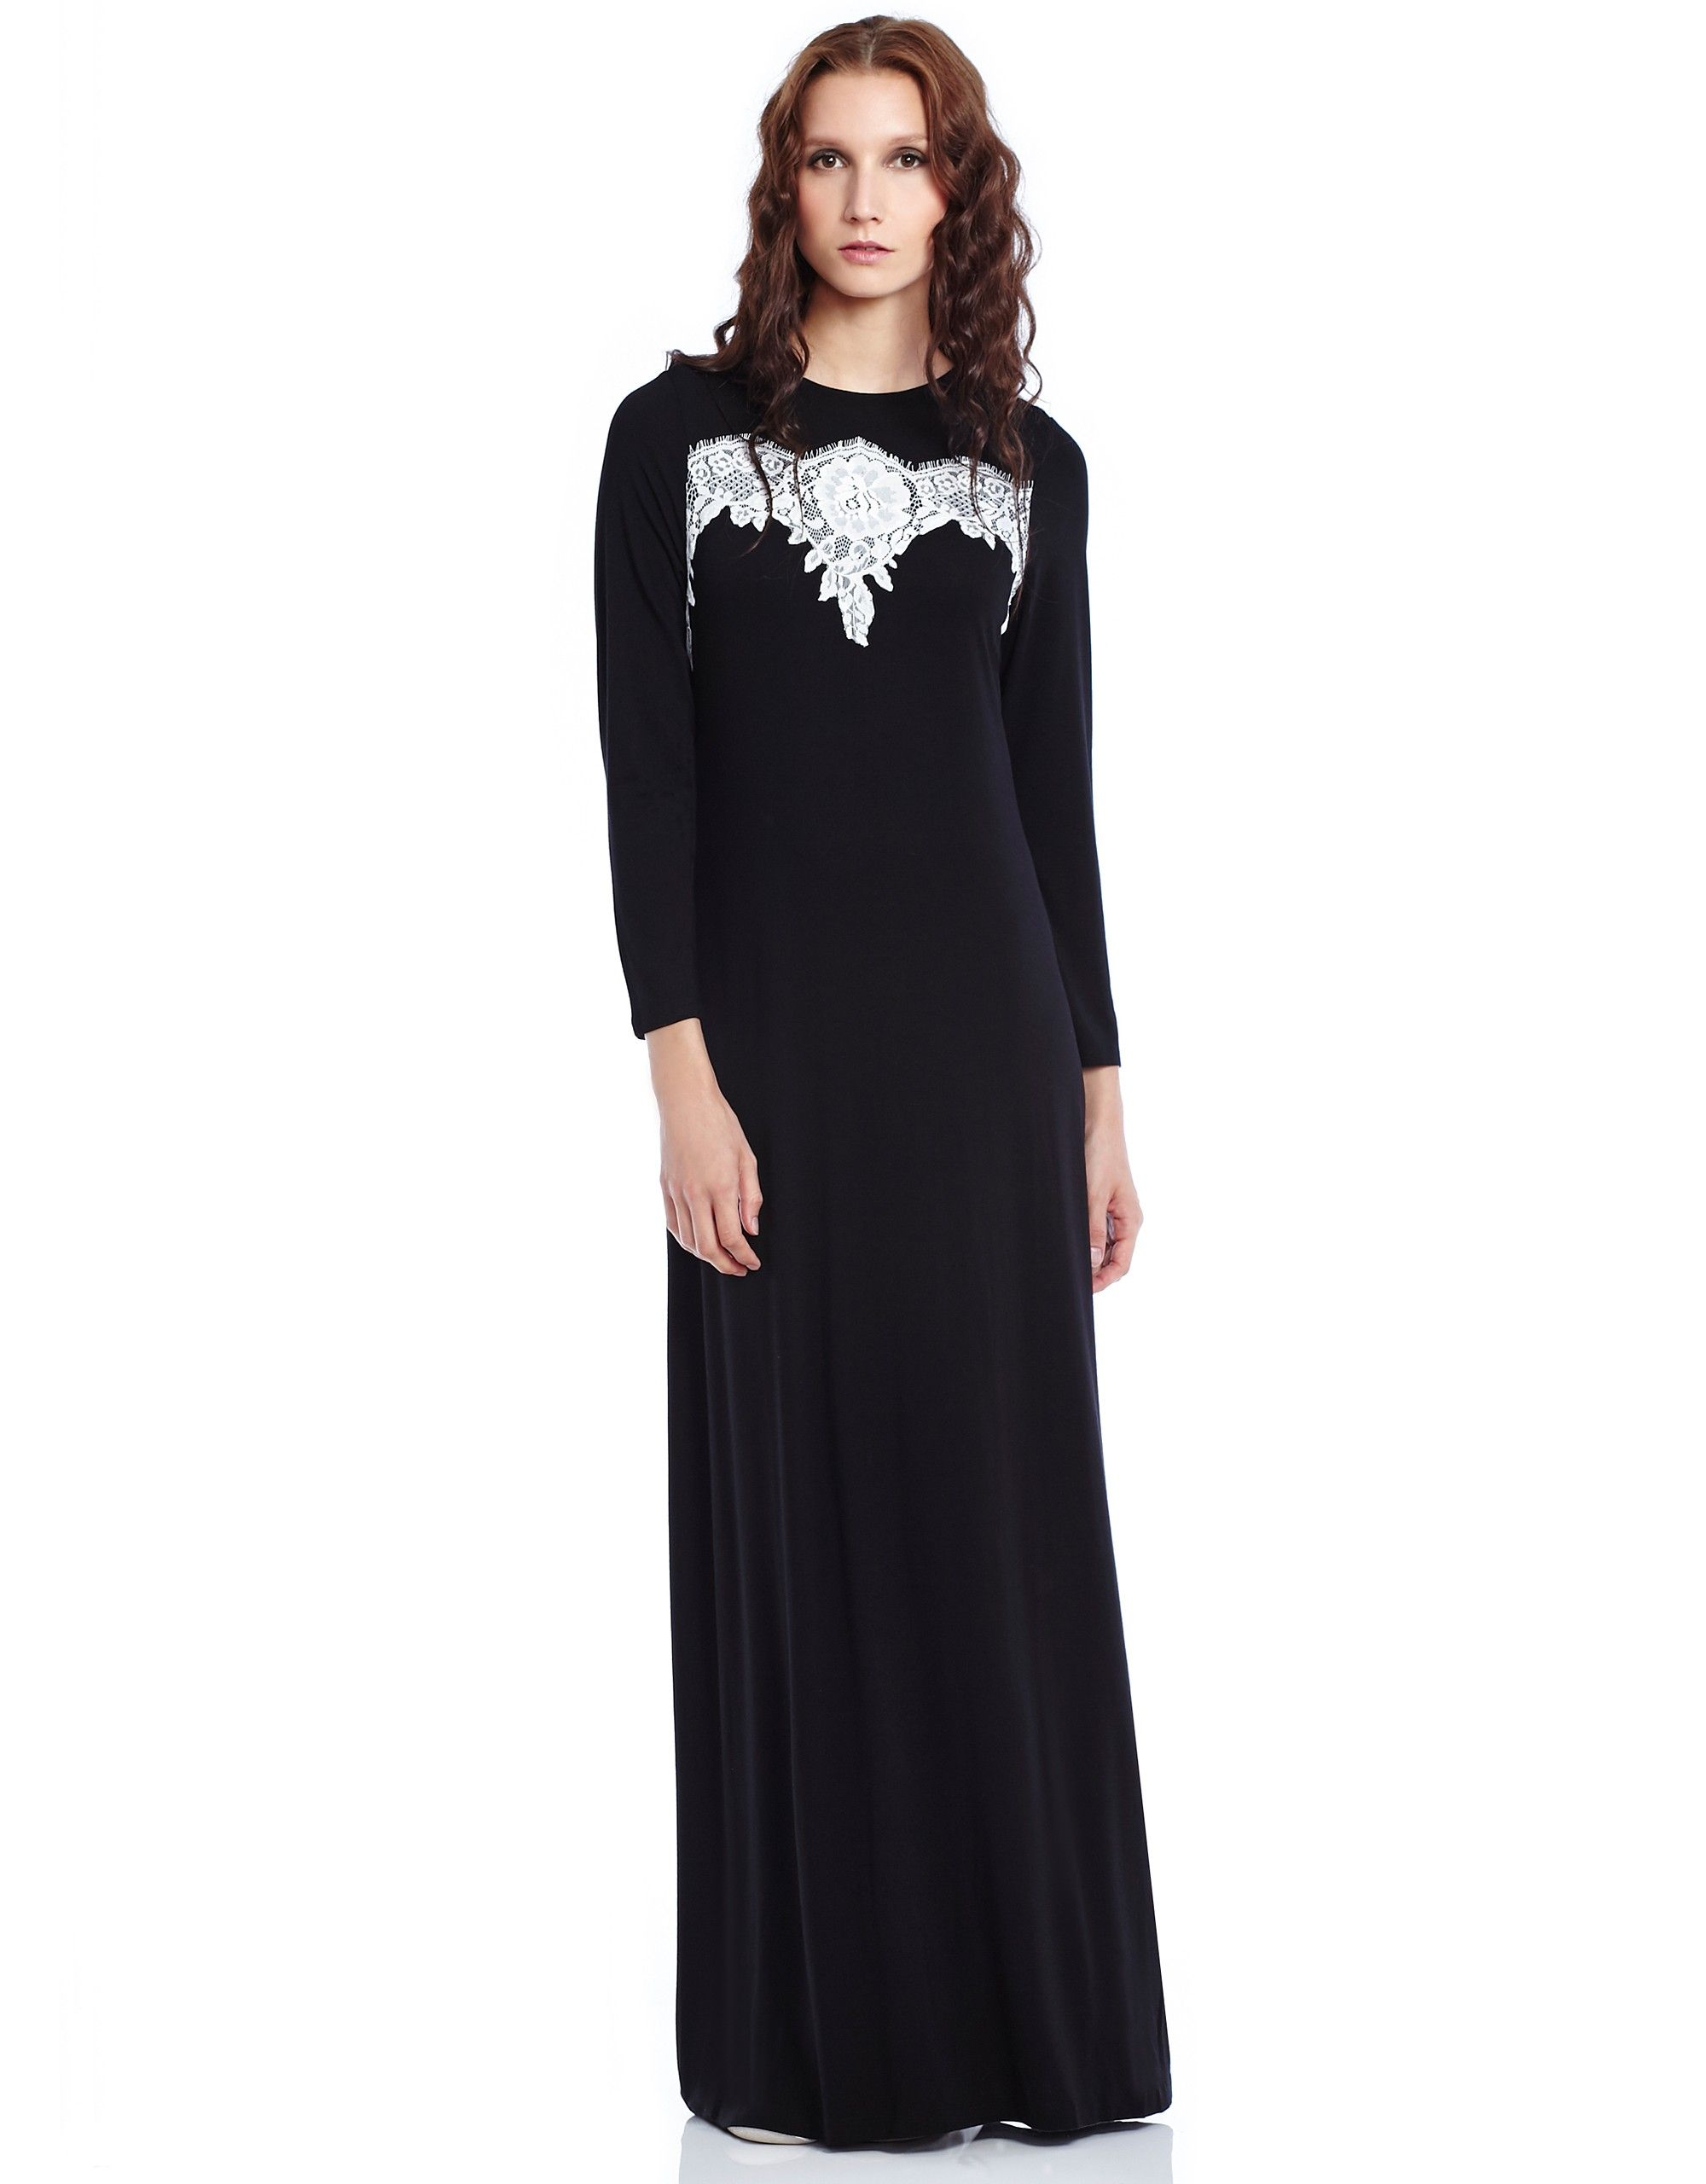 Lace Trimmed Cotton Modal Pull On Nightgown at The Lingerie Shop New York 70d6abb04